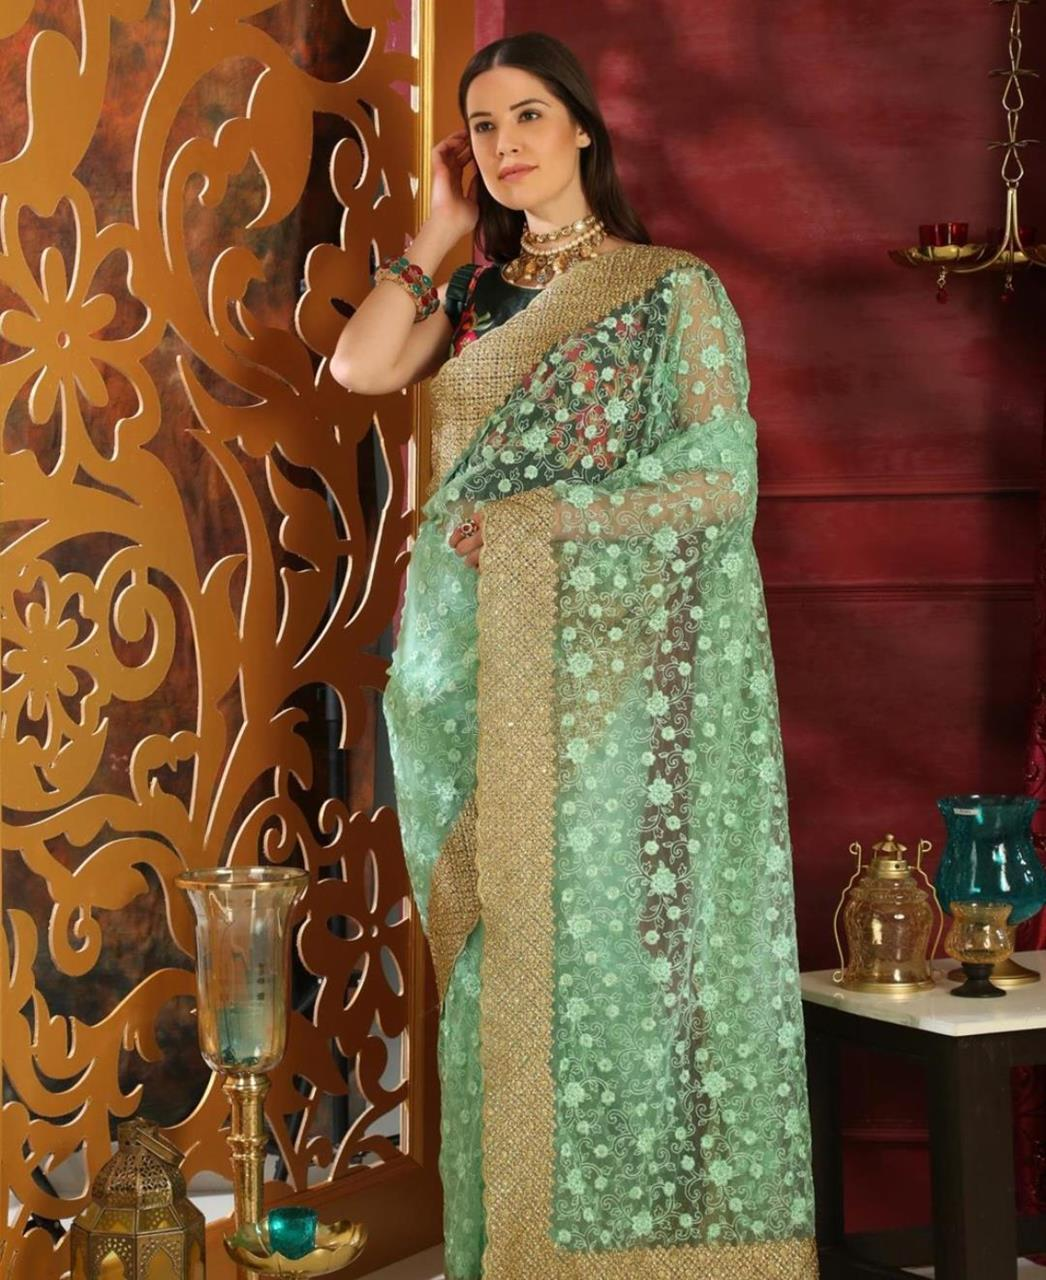 Embroidered Silk Saree (Sari) in MINTCREAM